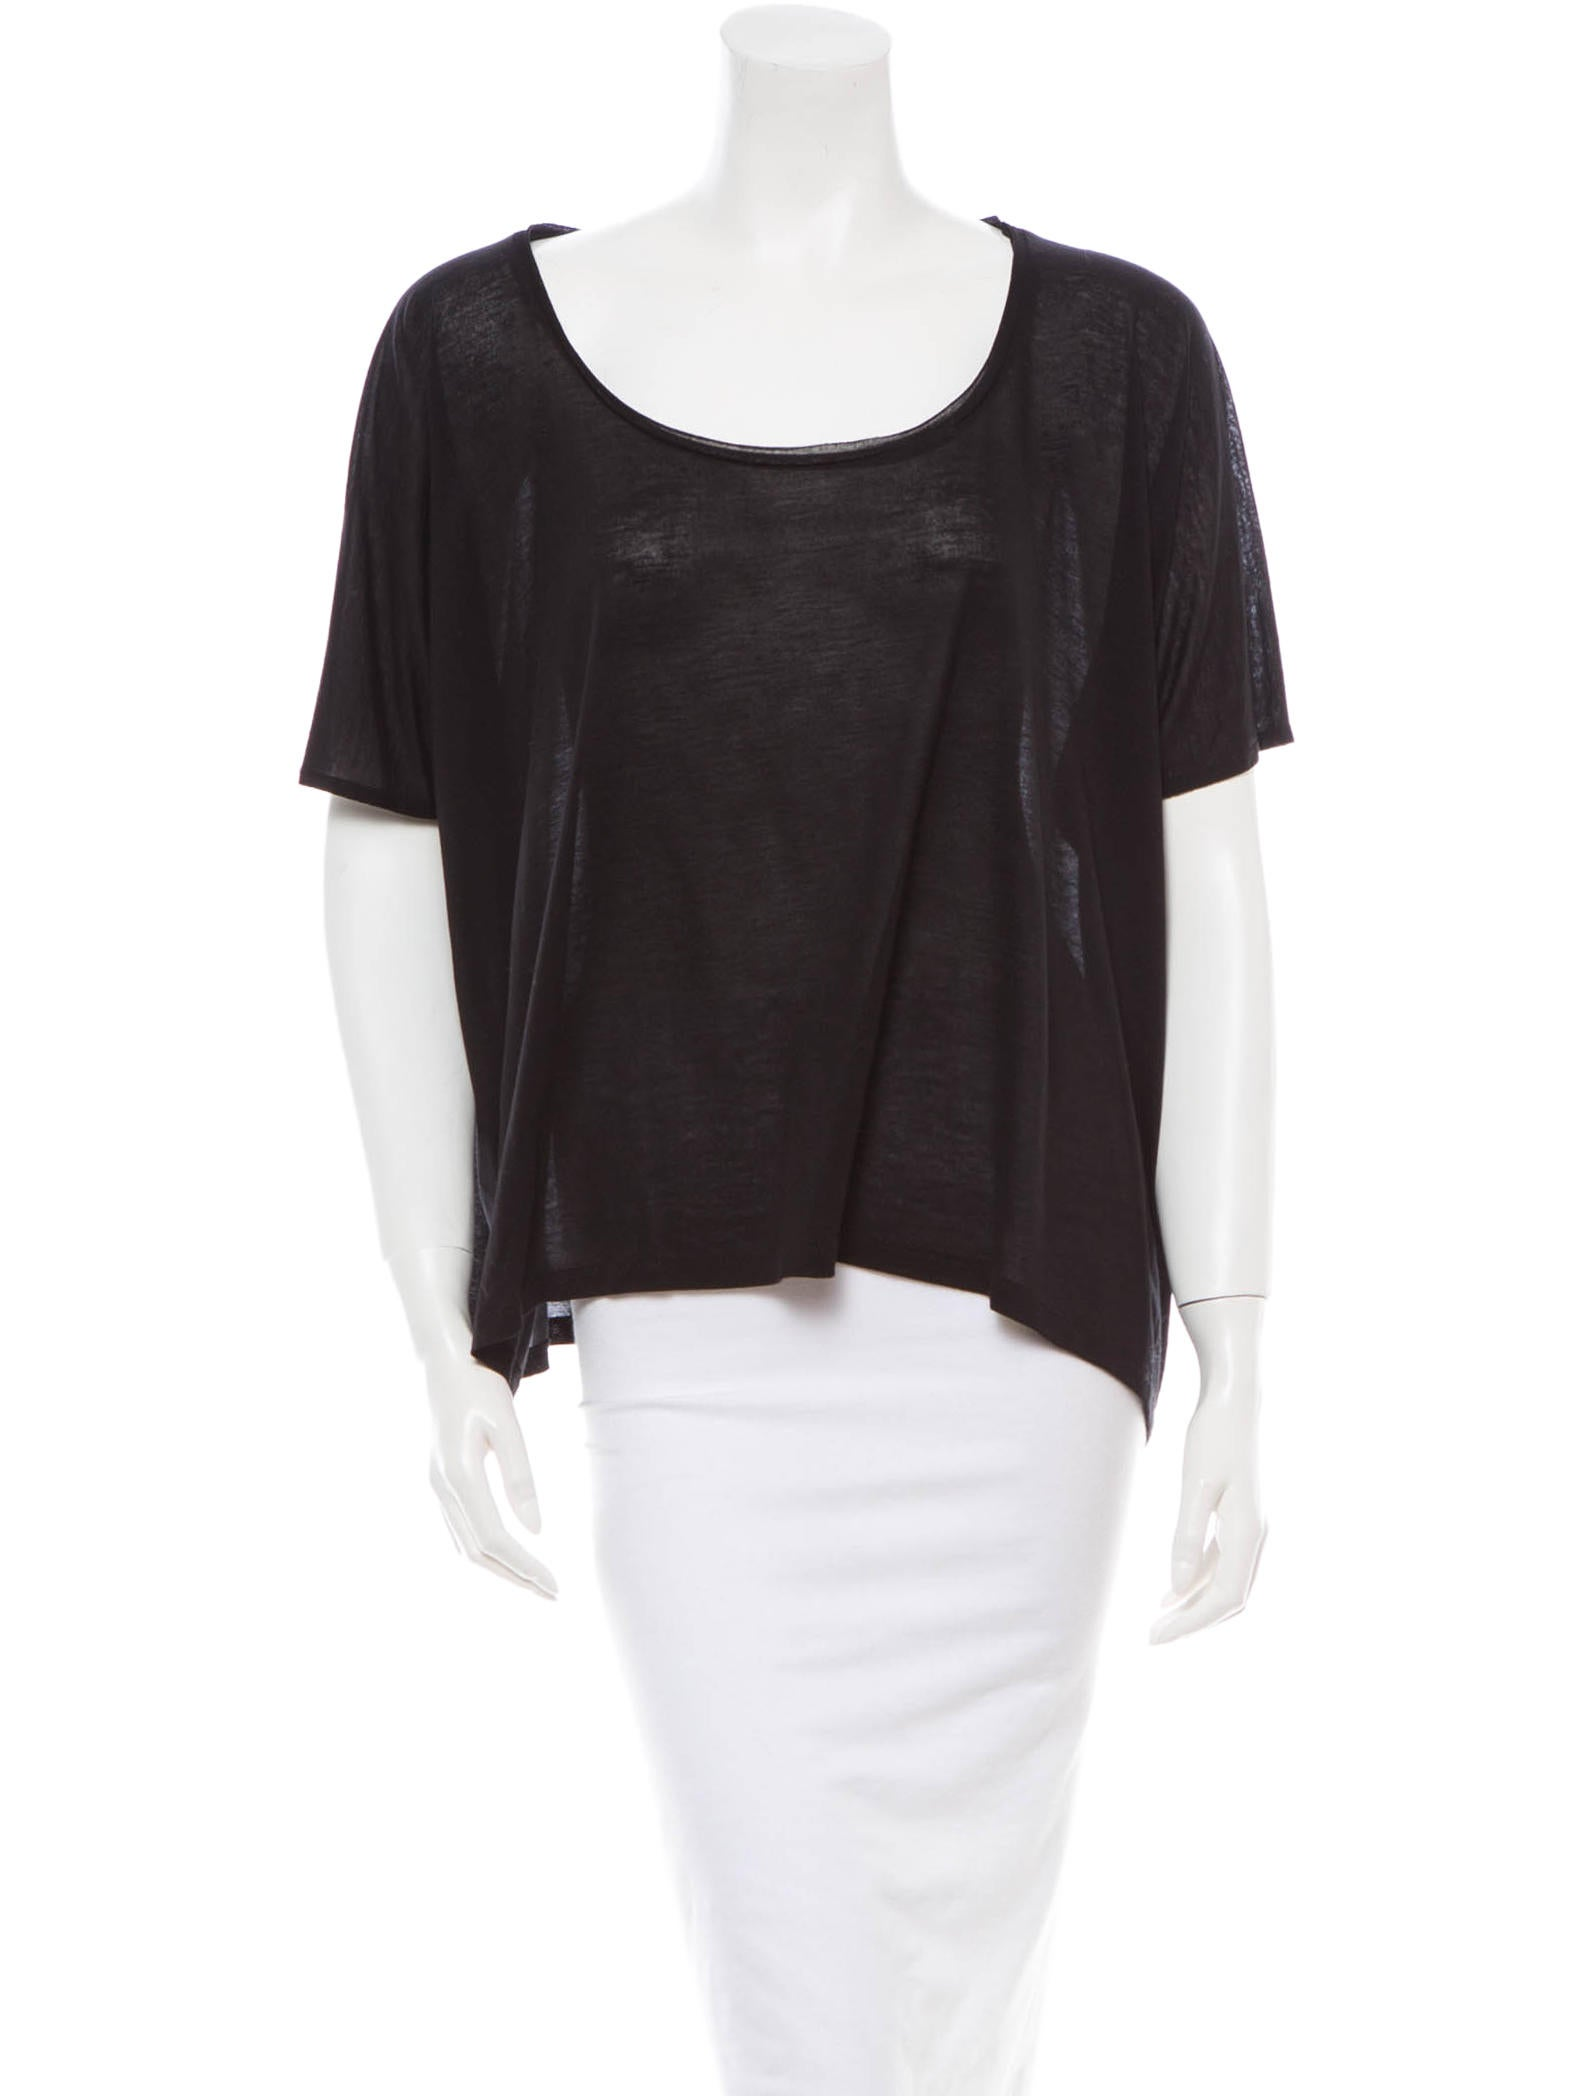 Acne Oversize T Shirt Clothing Acn21888 The Realreal